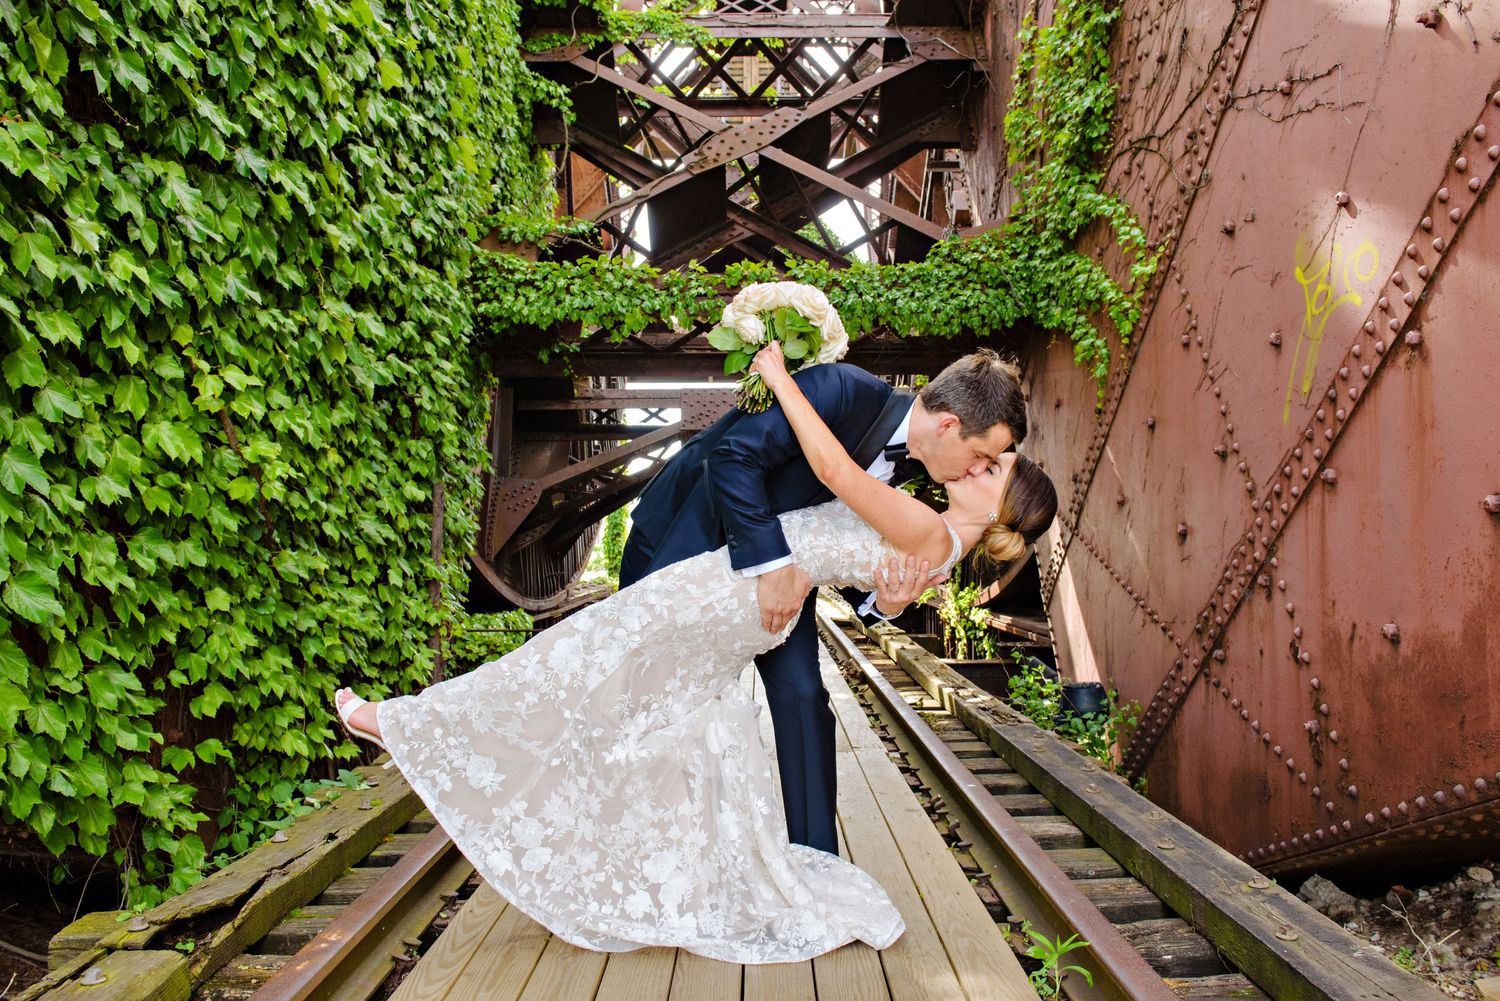 Bride and Groom wedding portrait at Jacknife Bridge in Cleveland